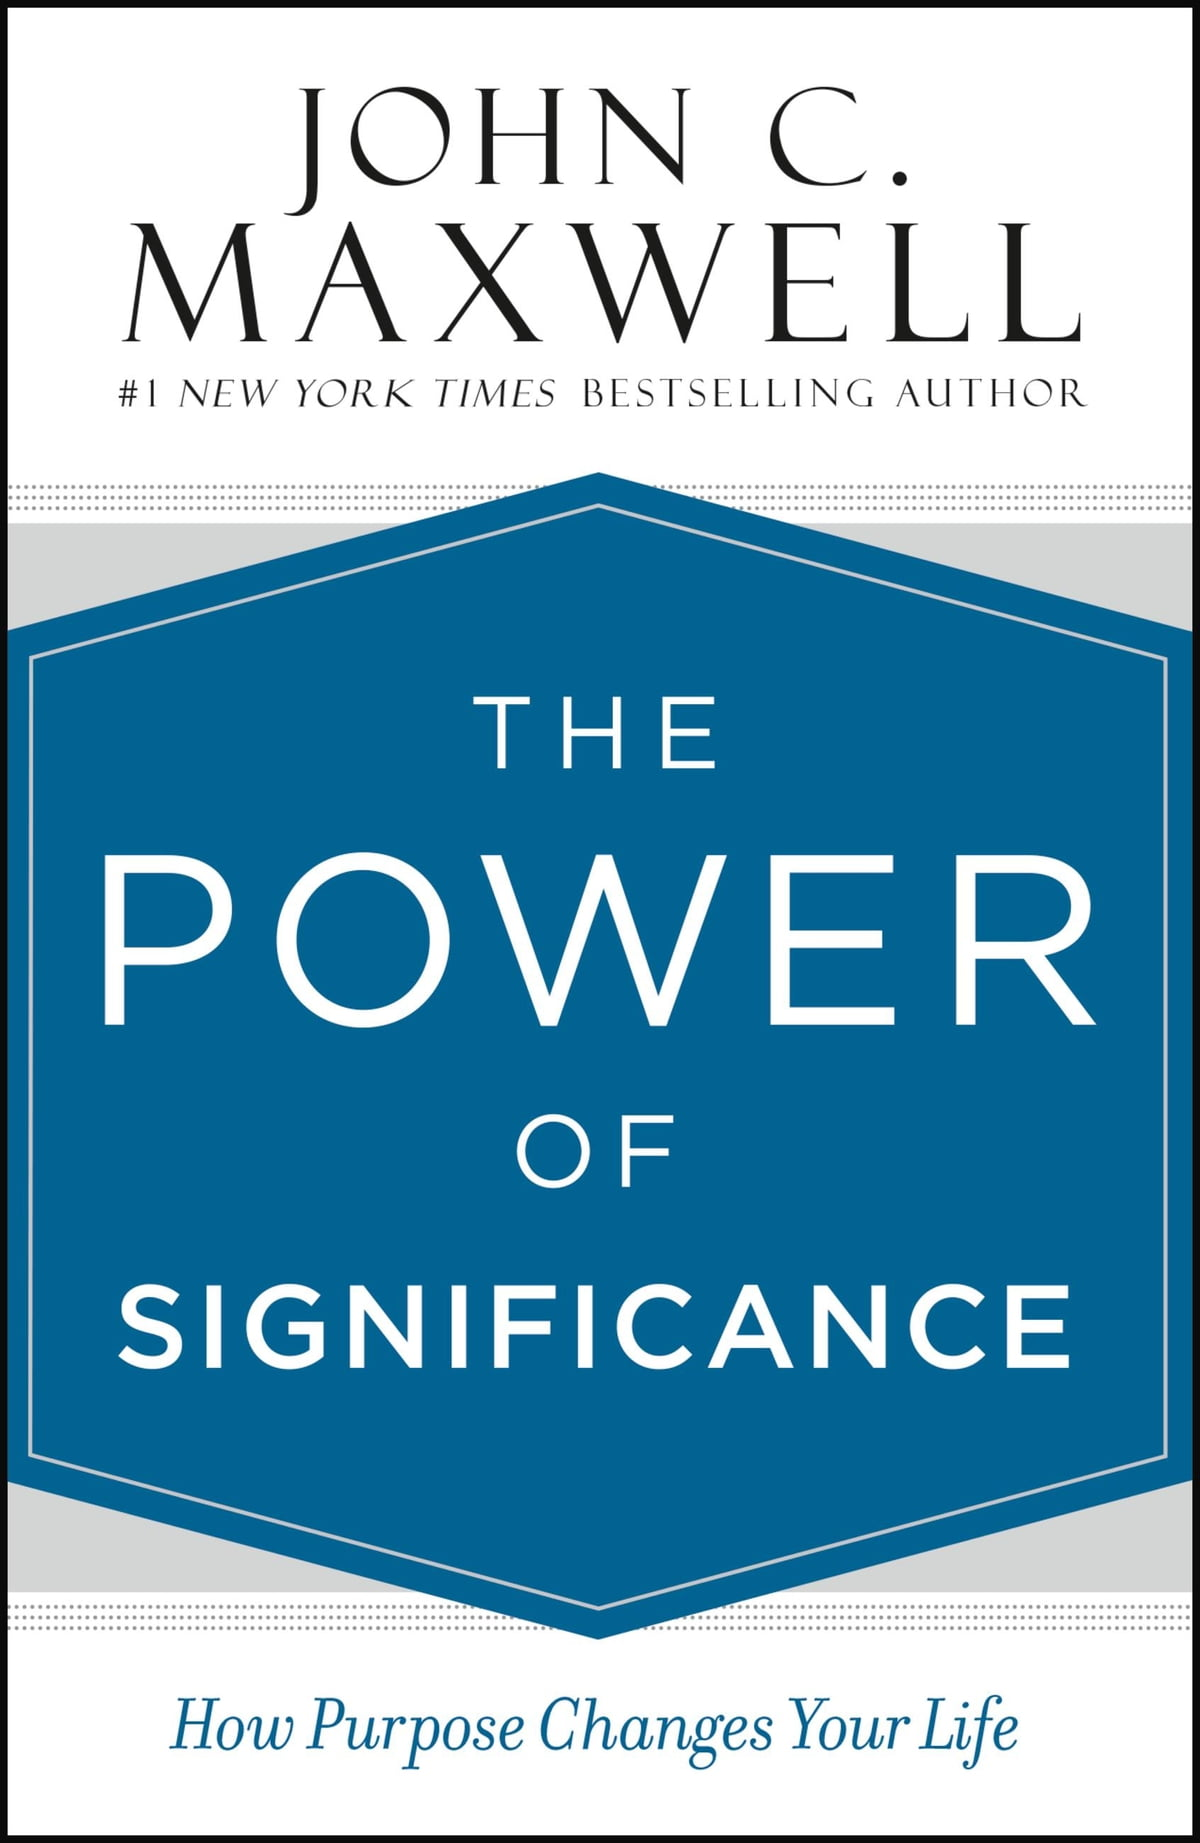 The Power of Significance eBook by John C. Maxwell - 9781455548224 ...